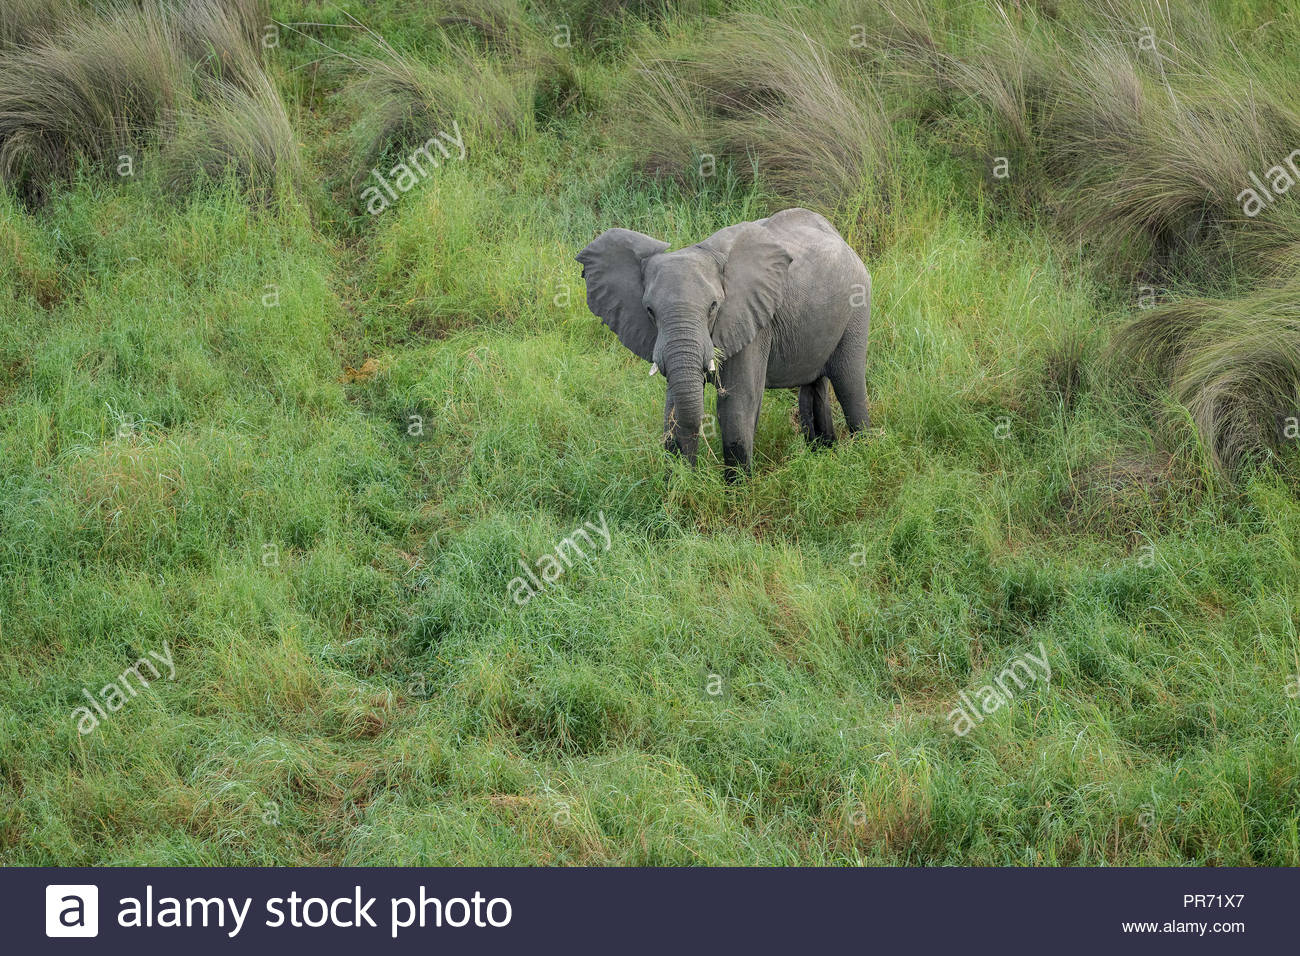 Aerial view of an elephant in the tall savanna grasses in the Okavango Delta, Botswana - Stock Image